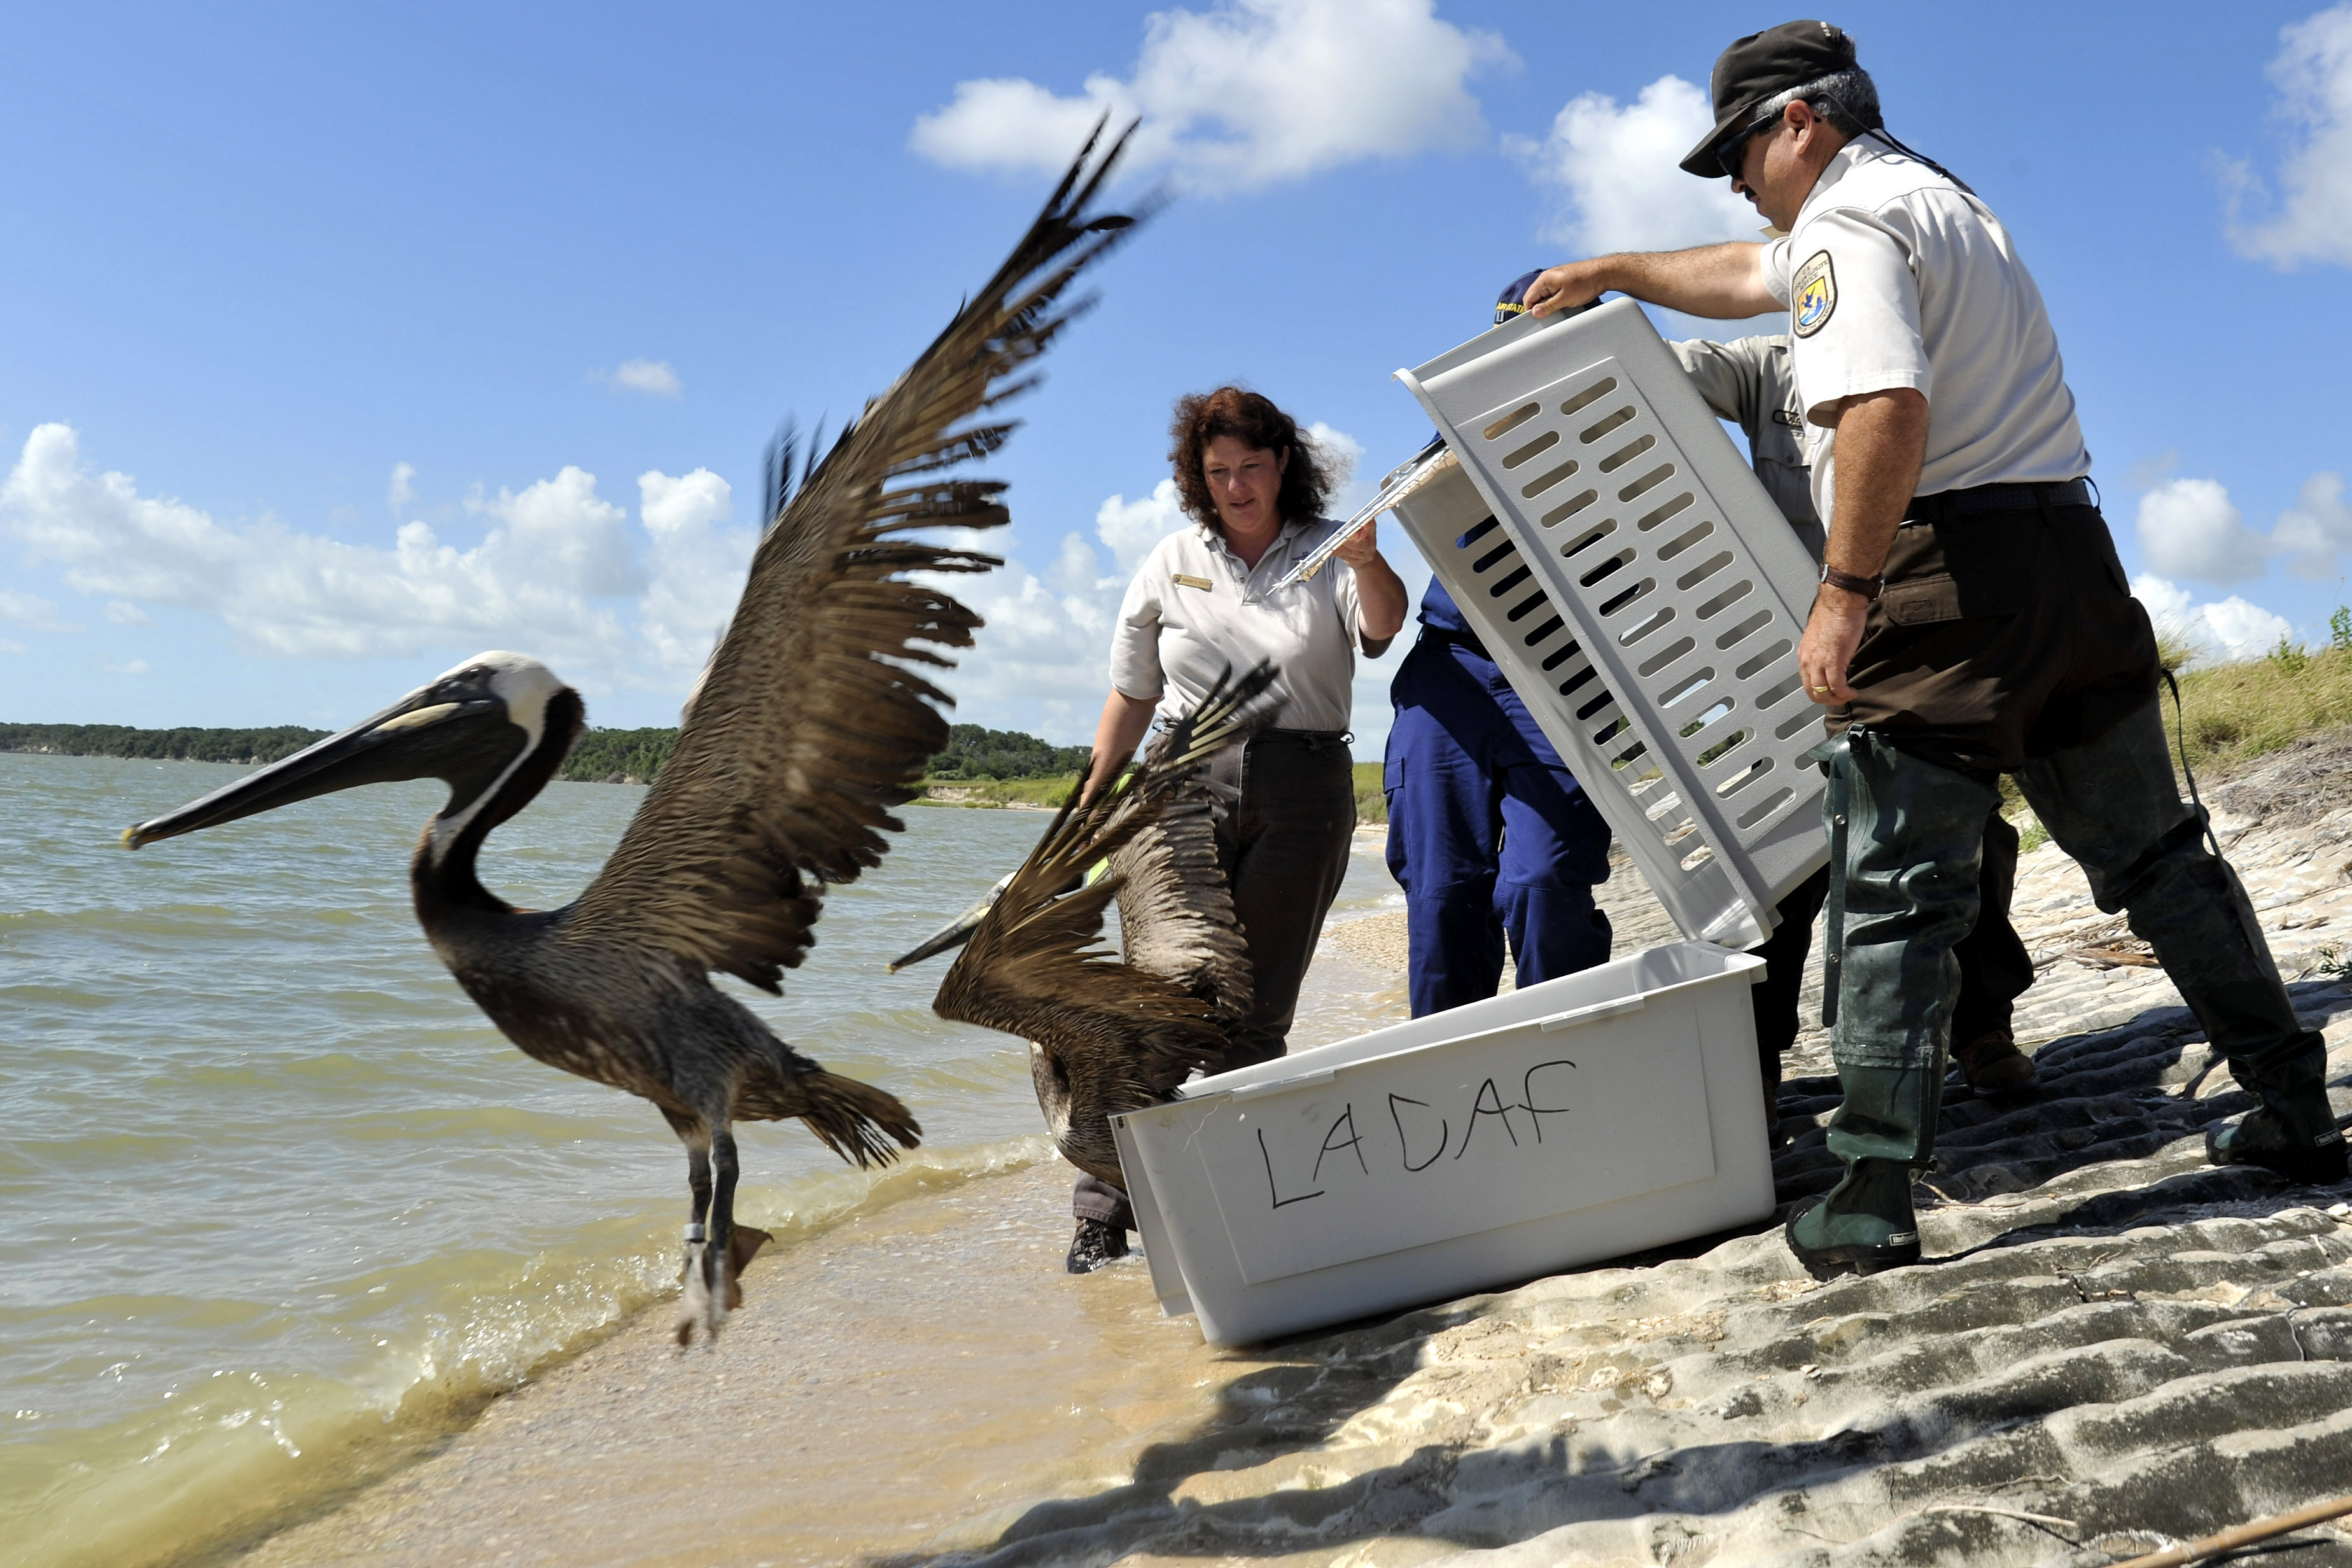 Rehabilitated Brown Pelicans are released in Port Aransas, Texas in June 2010. Petty Officer 3rd Class Robert Brazzel/U.S. Coast Guard